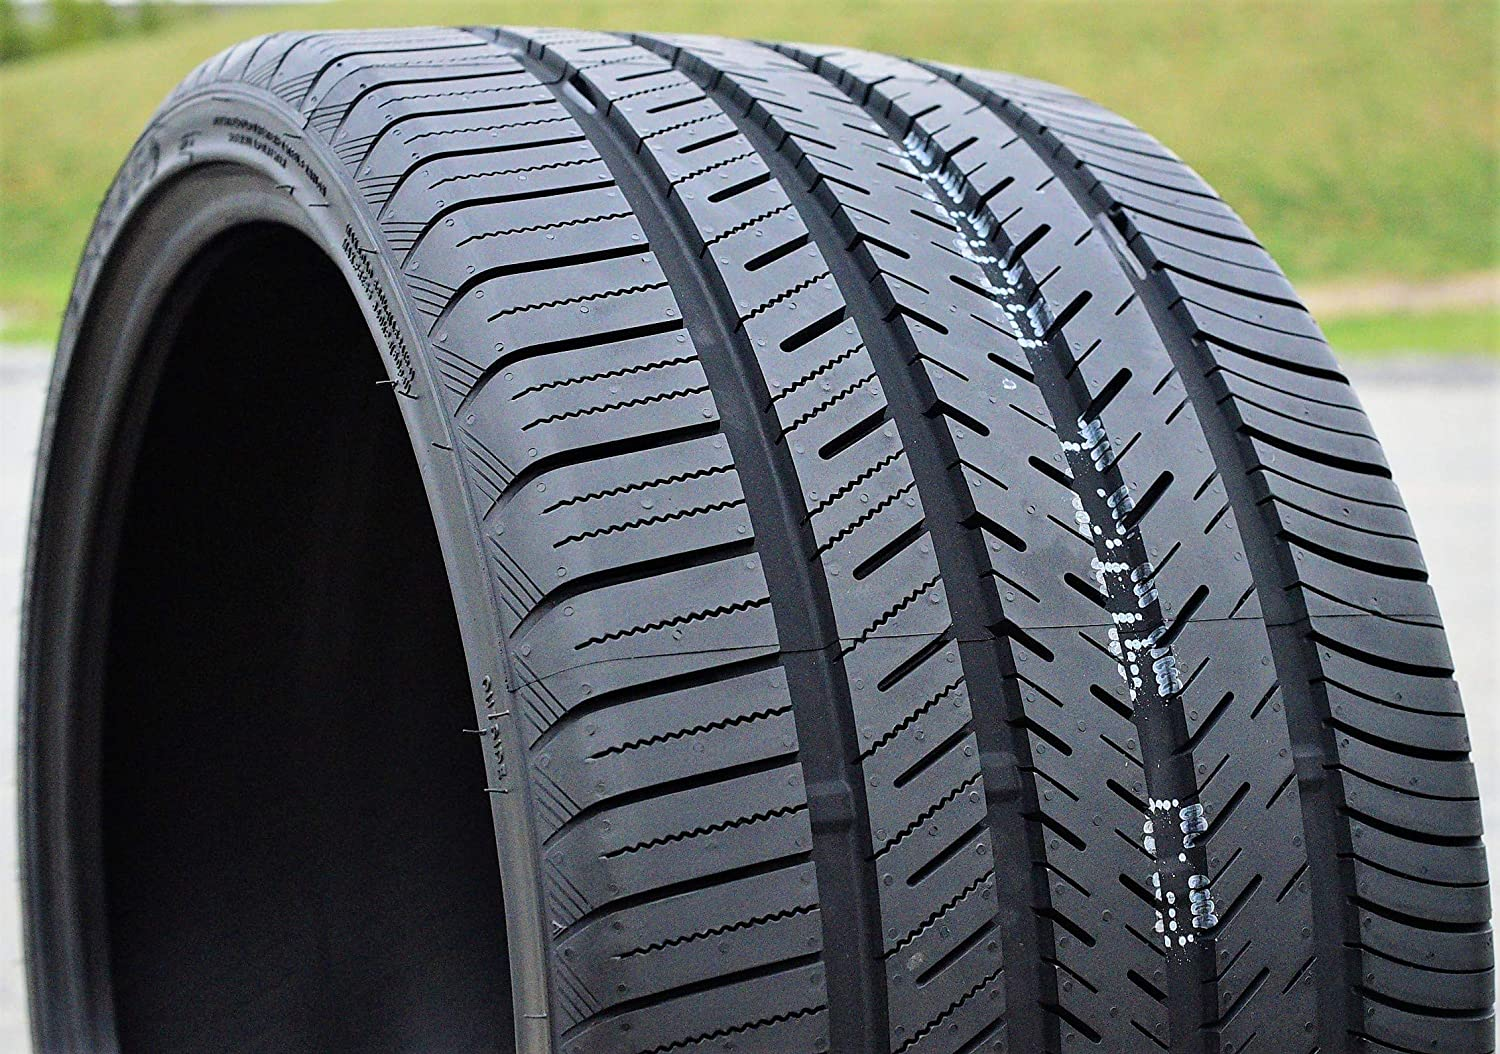 Atlas Tire Force UHP All-Season High Performance Radial Tires-305//25R22 99Y XL Set of 2 TWO